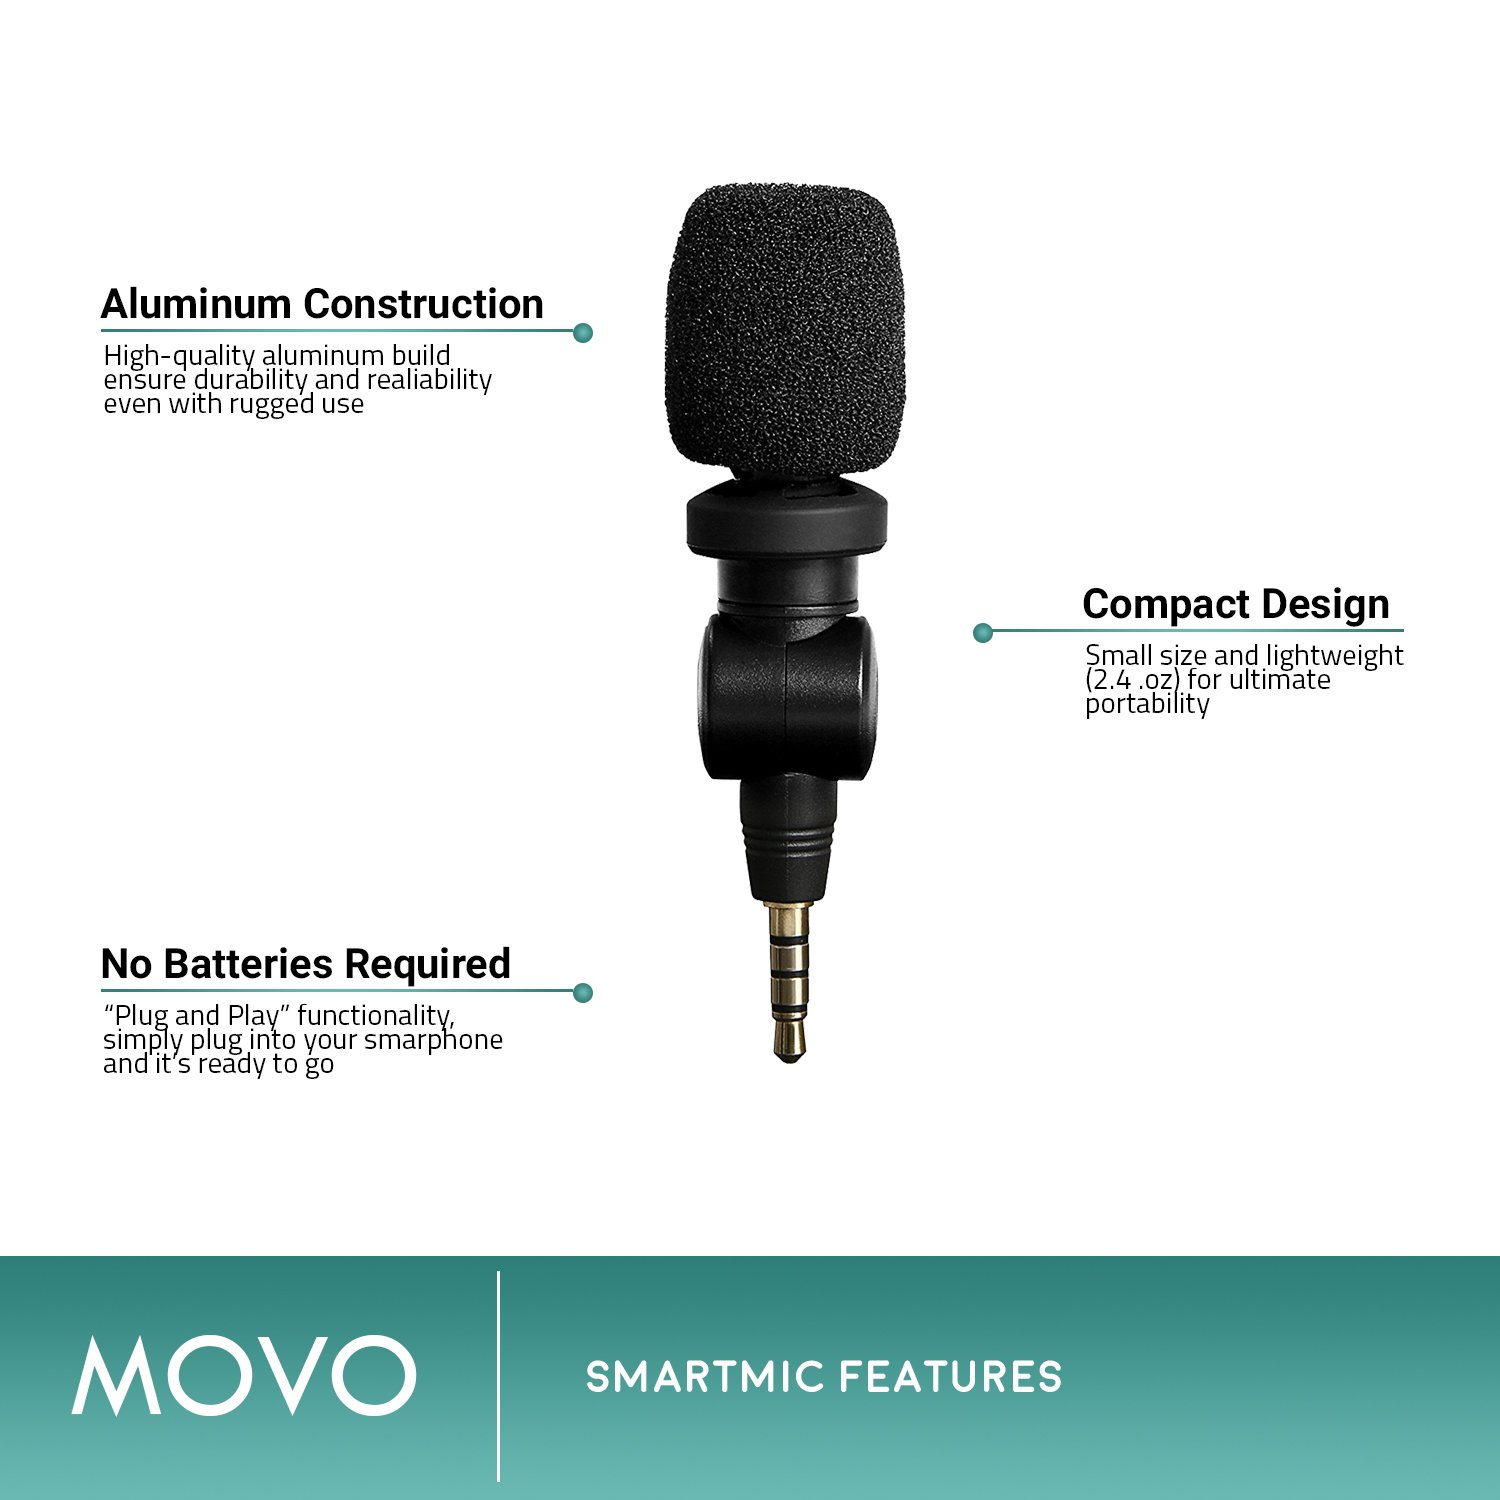 Saramonic SmartMic Microphone with Lightning Dongle Clip for iPhone 7, iPhone 7 Plus, iPhone 8, iPhone X, and other iOS Devices (Black) by Movo (Image #2)